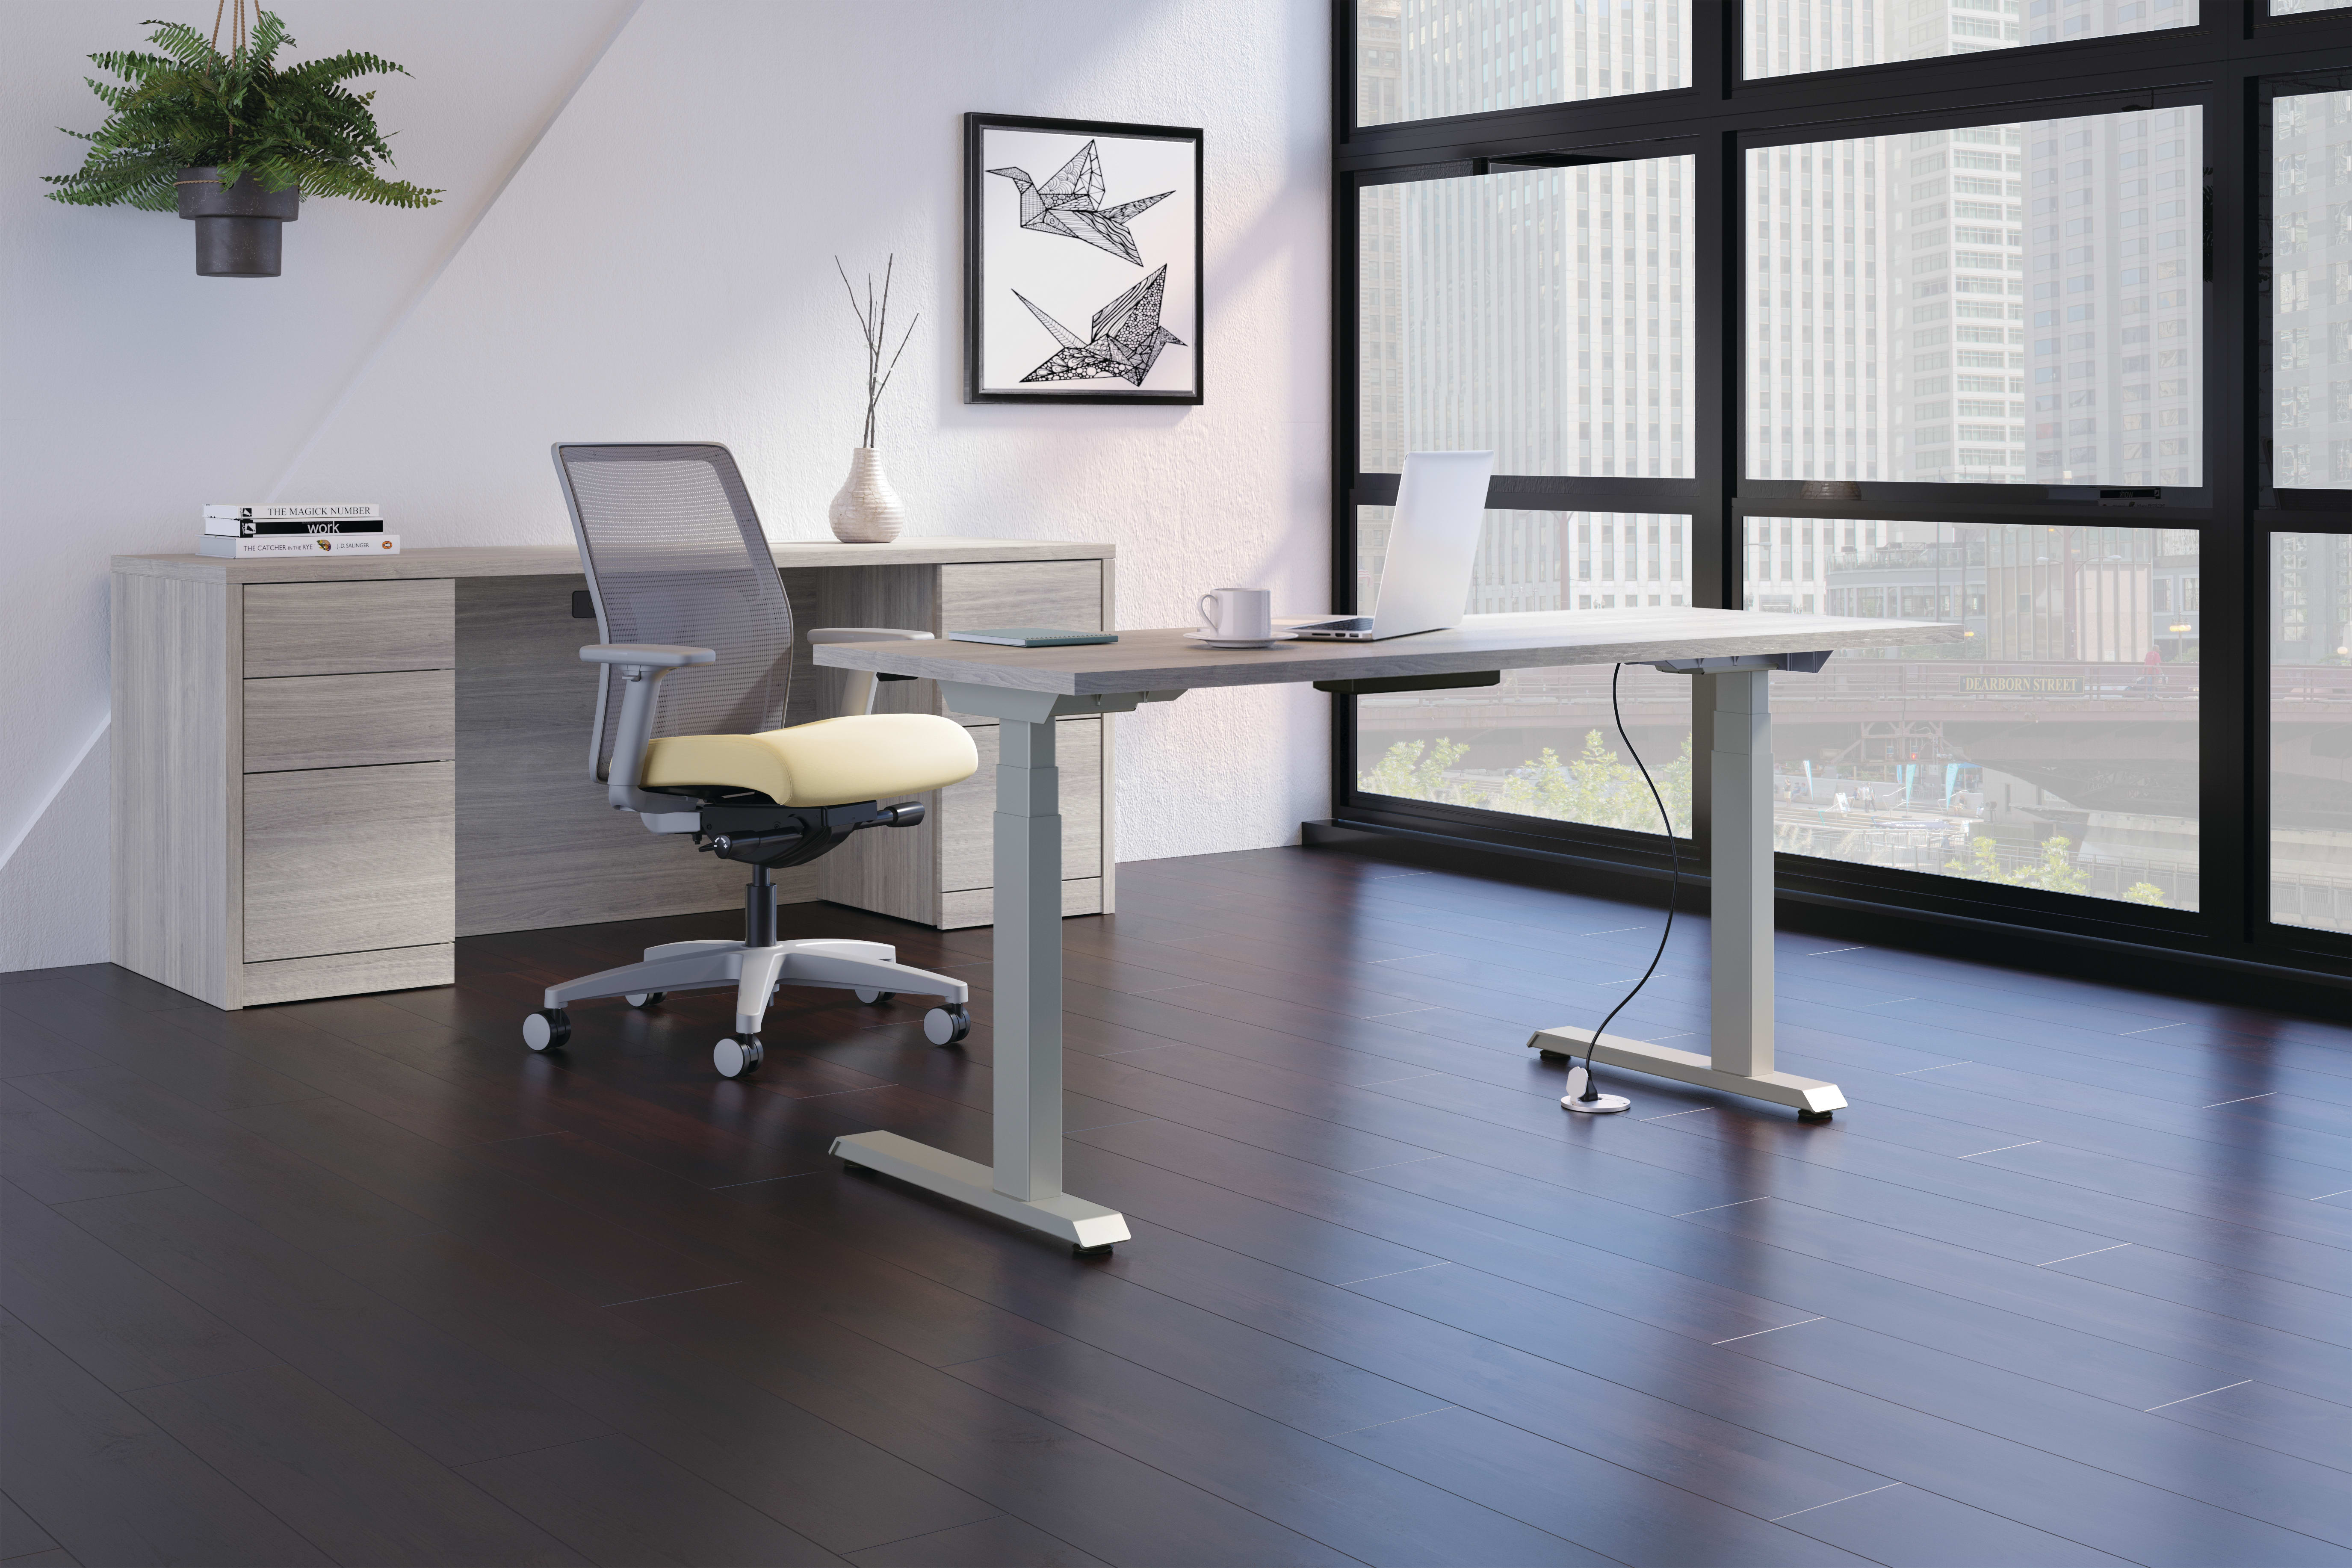 Ignition Chair with Coordinate Height Adjustable Table.